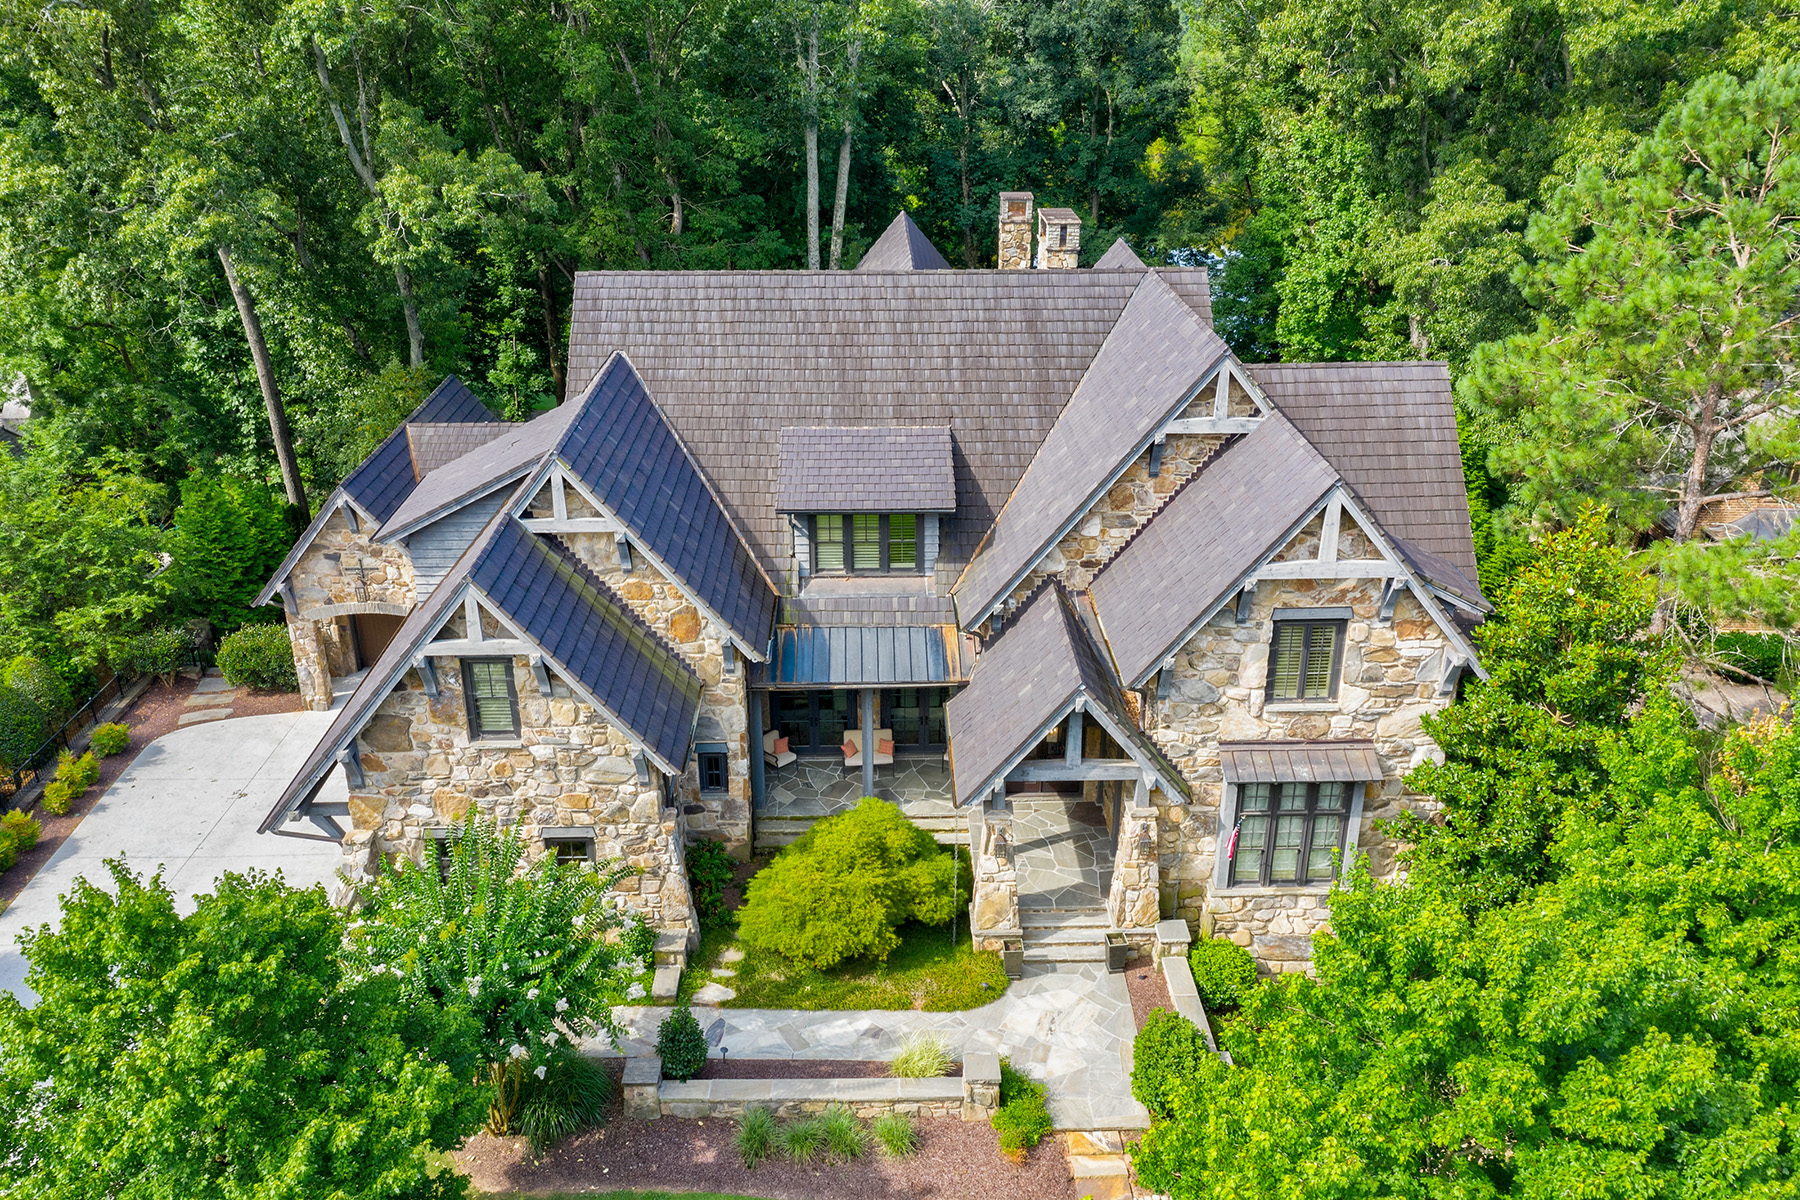 Single Family Homes для того Продажа на Custom Home Situated Among Tranquil Woods, Shimmering Lake and Golf Course View 4824 Elkhorn Hill Drive, Suwanee, Джорджия 30024 Соединенные Штаты